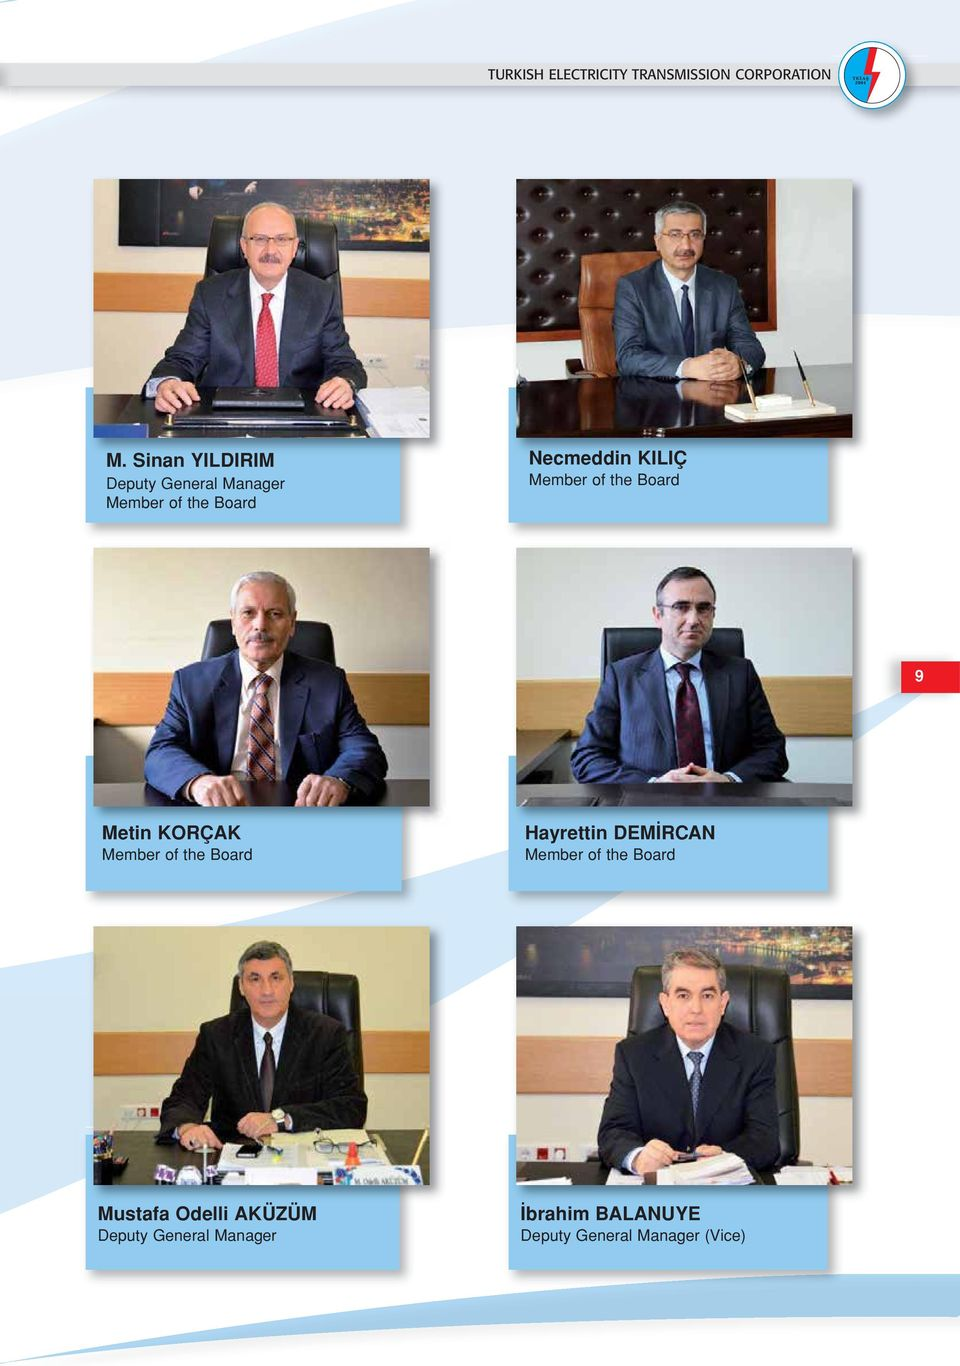 Member of the Board 9 Metin KORÇAK Member of the Board Hayrettin DEMİRCAN